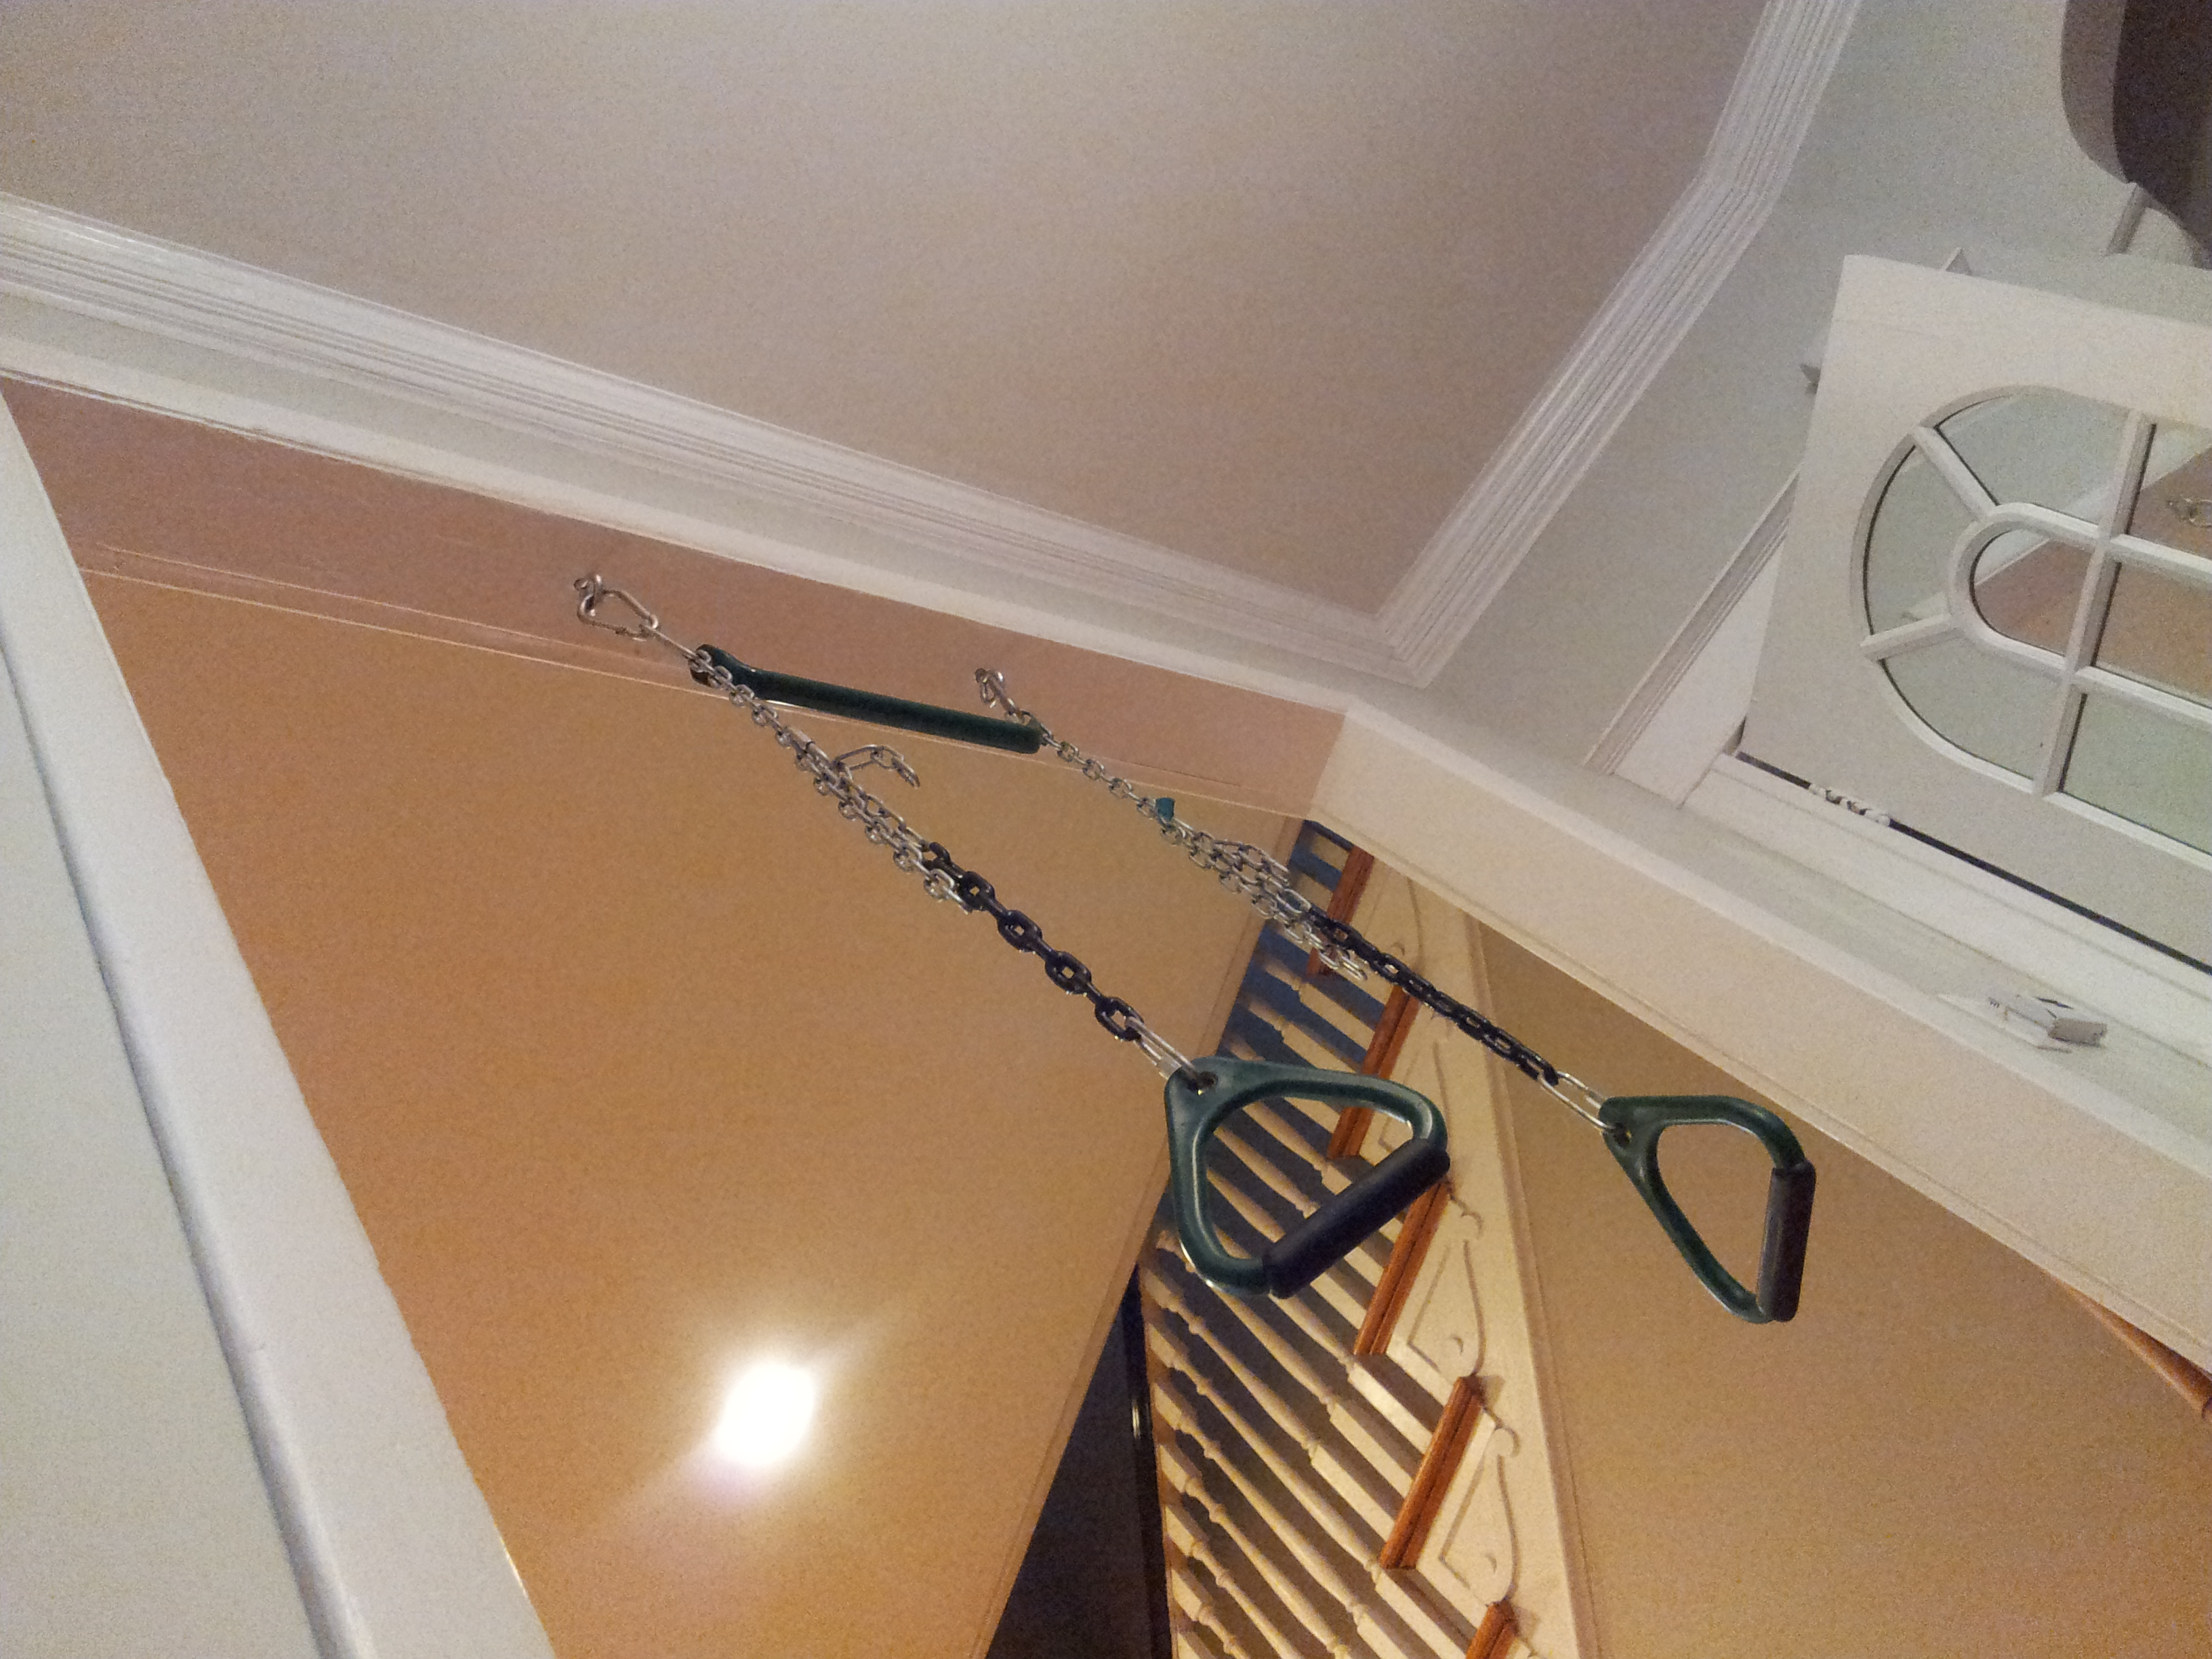 Easy to hang, inexpensive and adjustable.